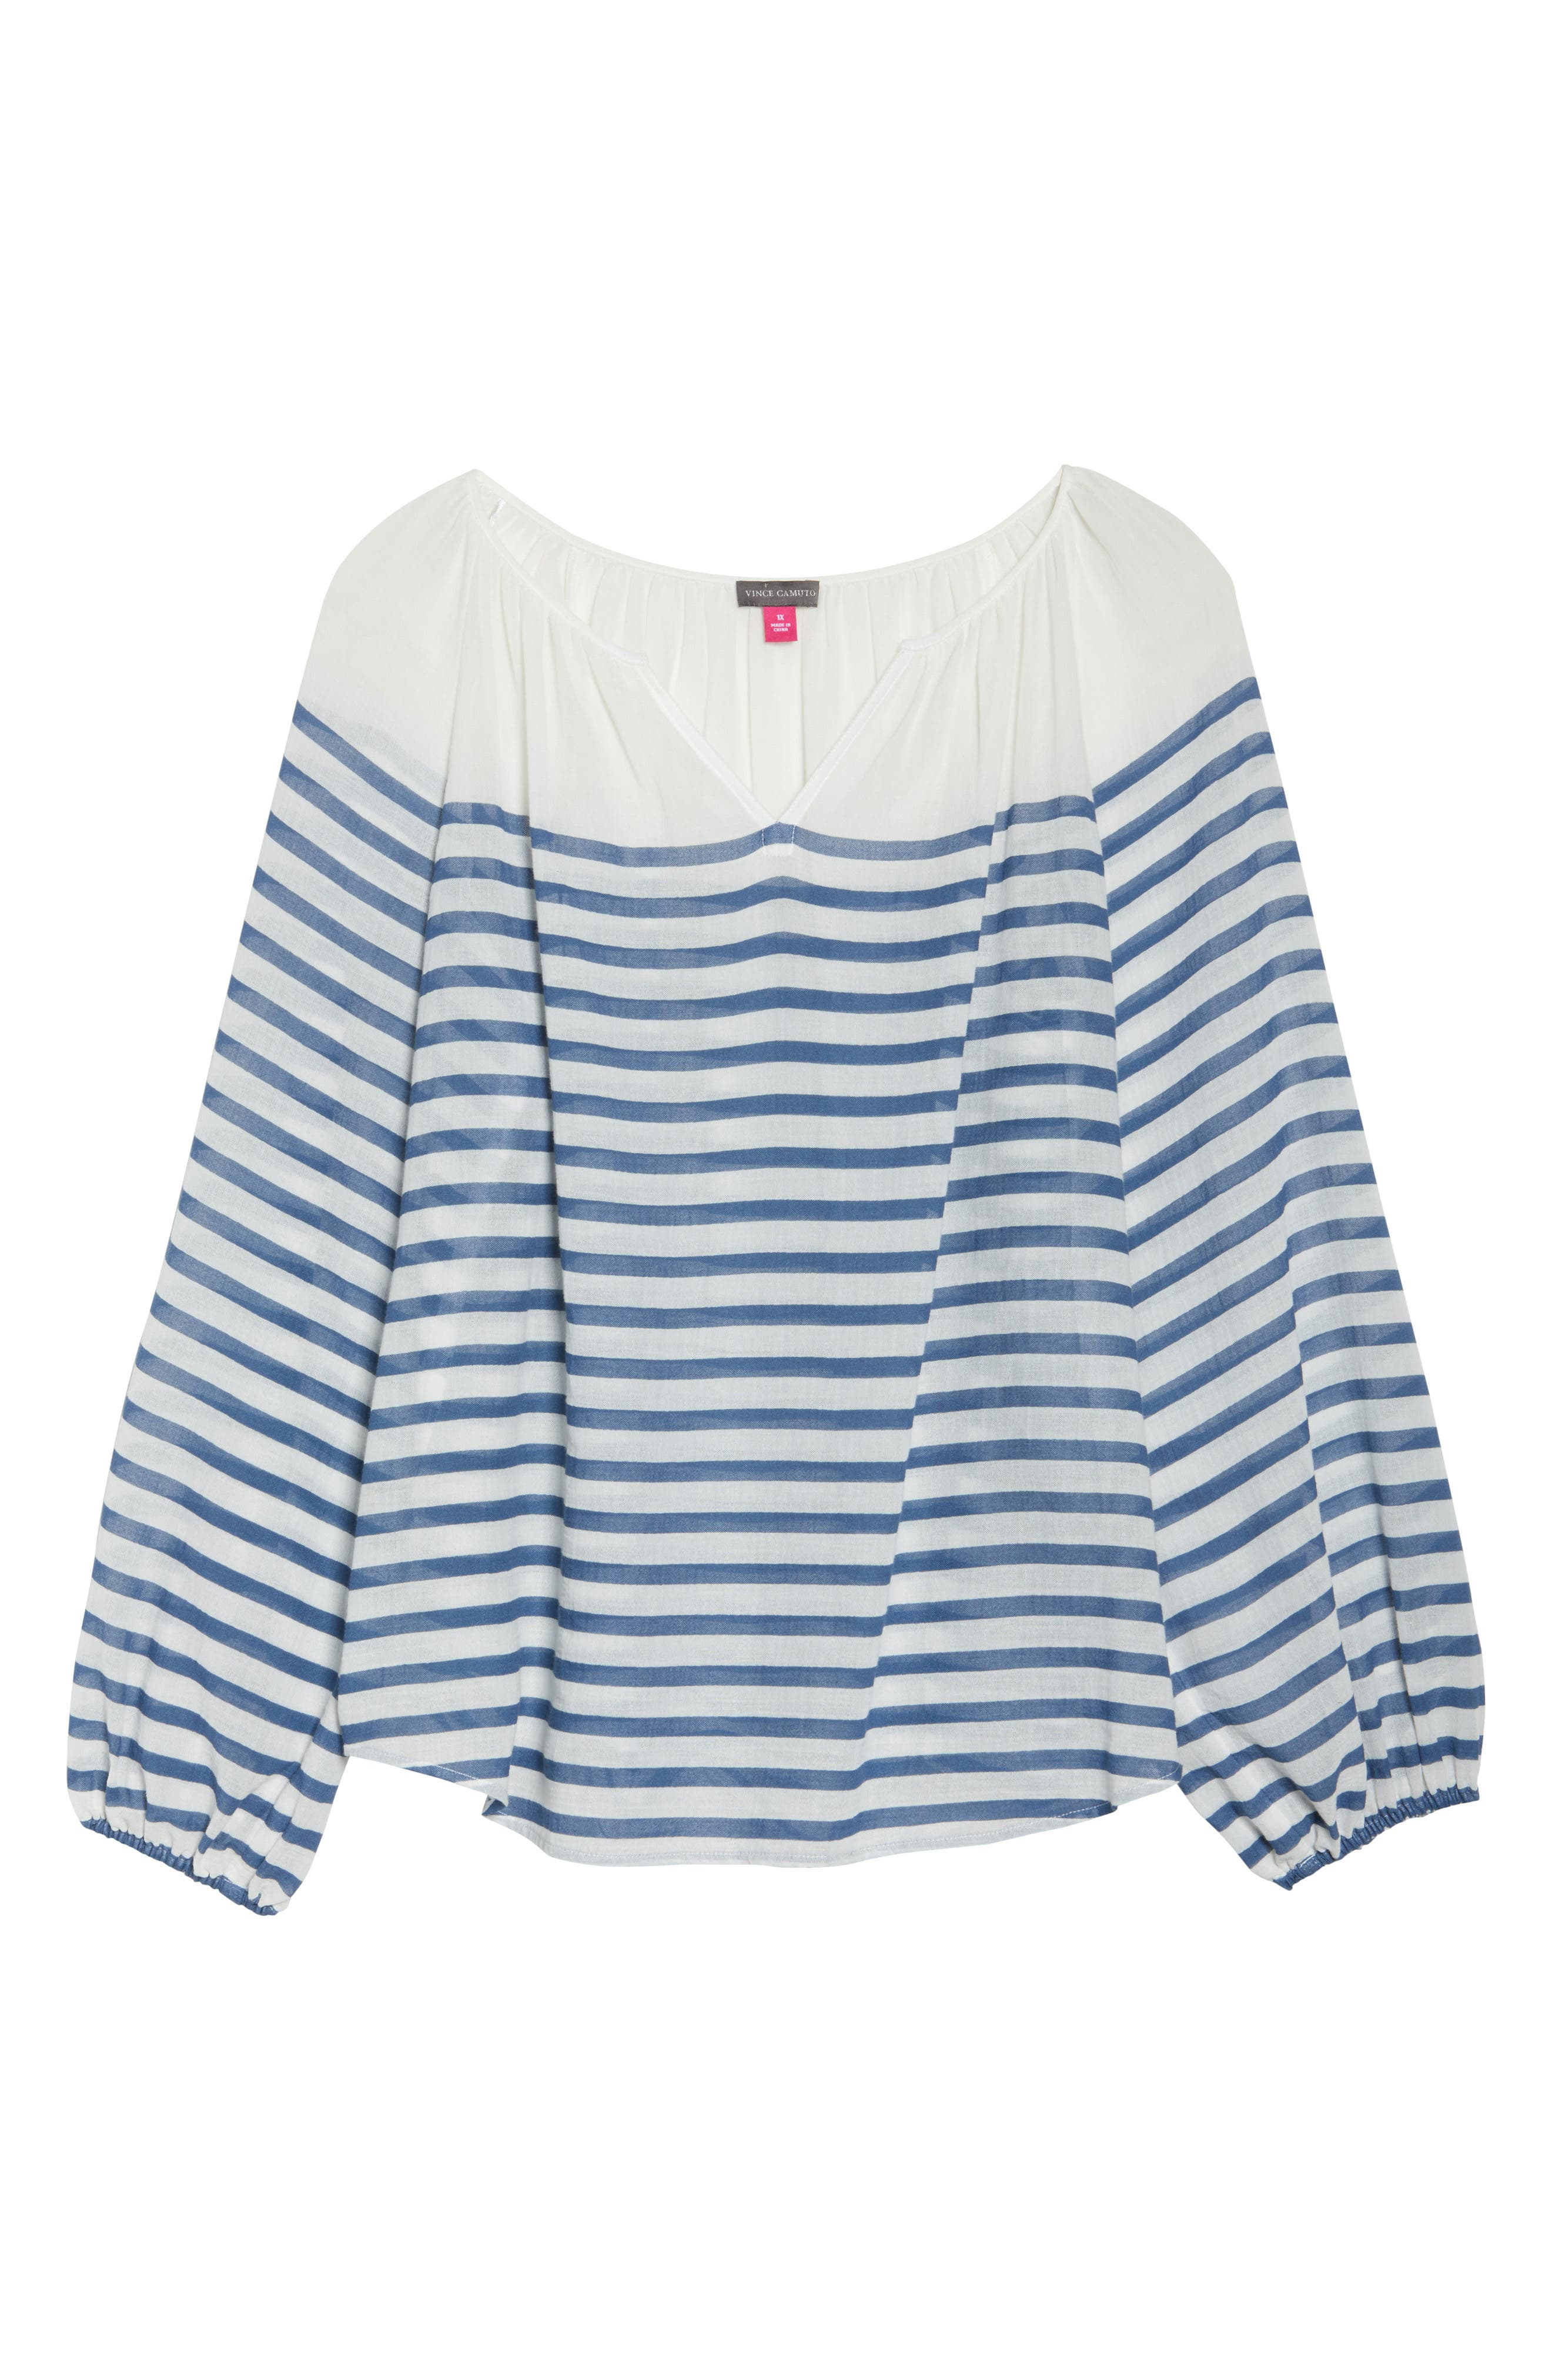 Stripe Peasant Blouse,                             Alternate thumbnail 6, color,                             429